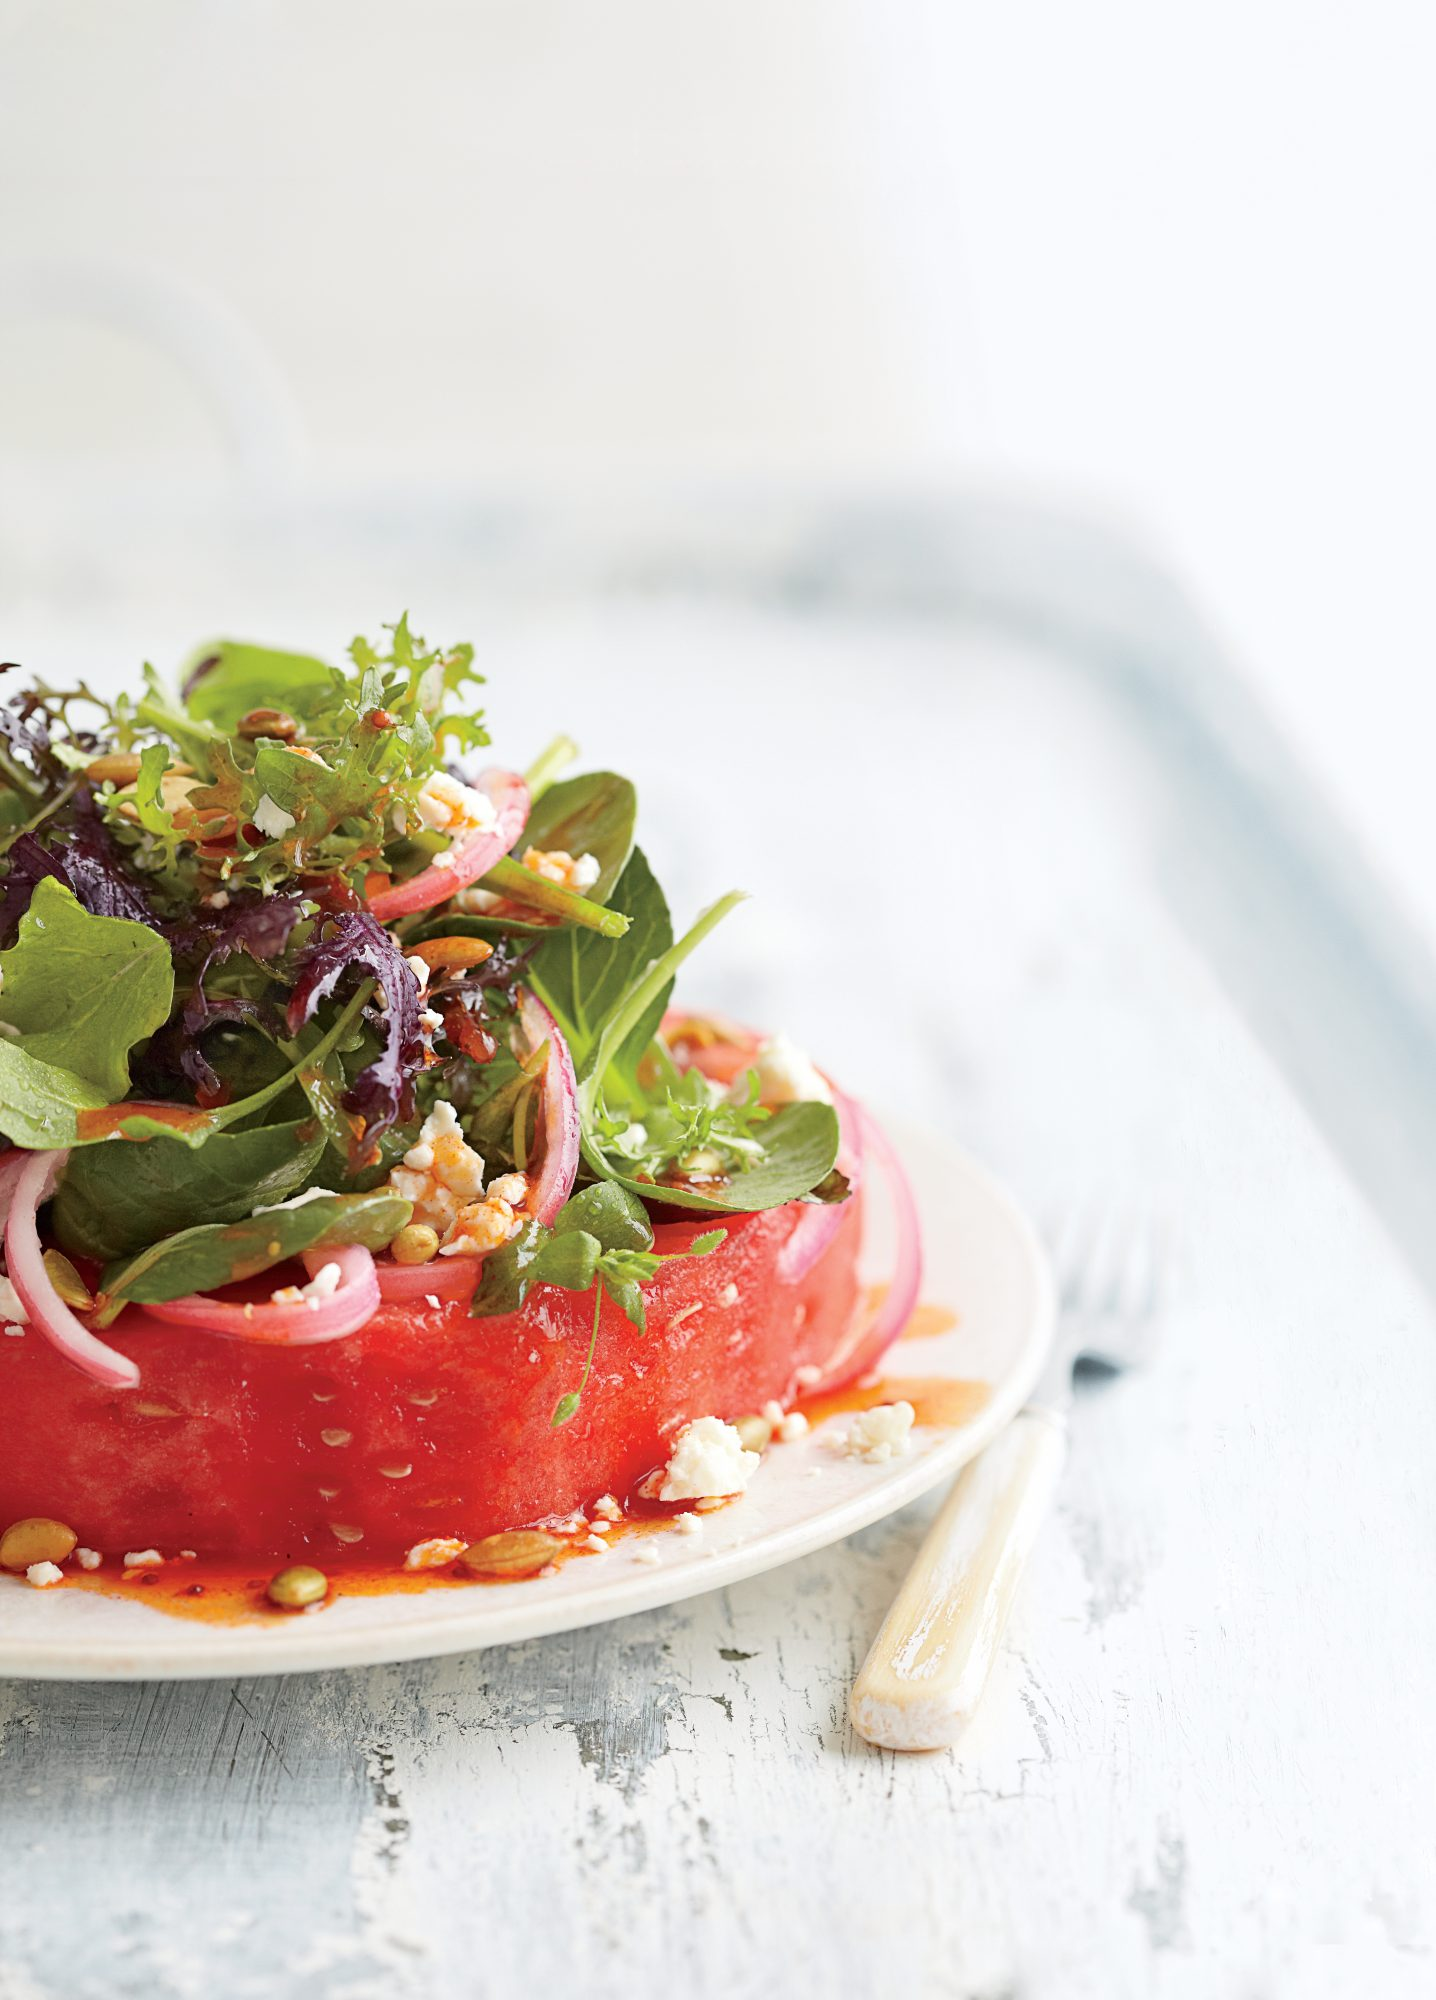 Watermelon  Steak  Salad